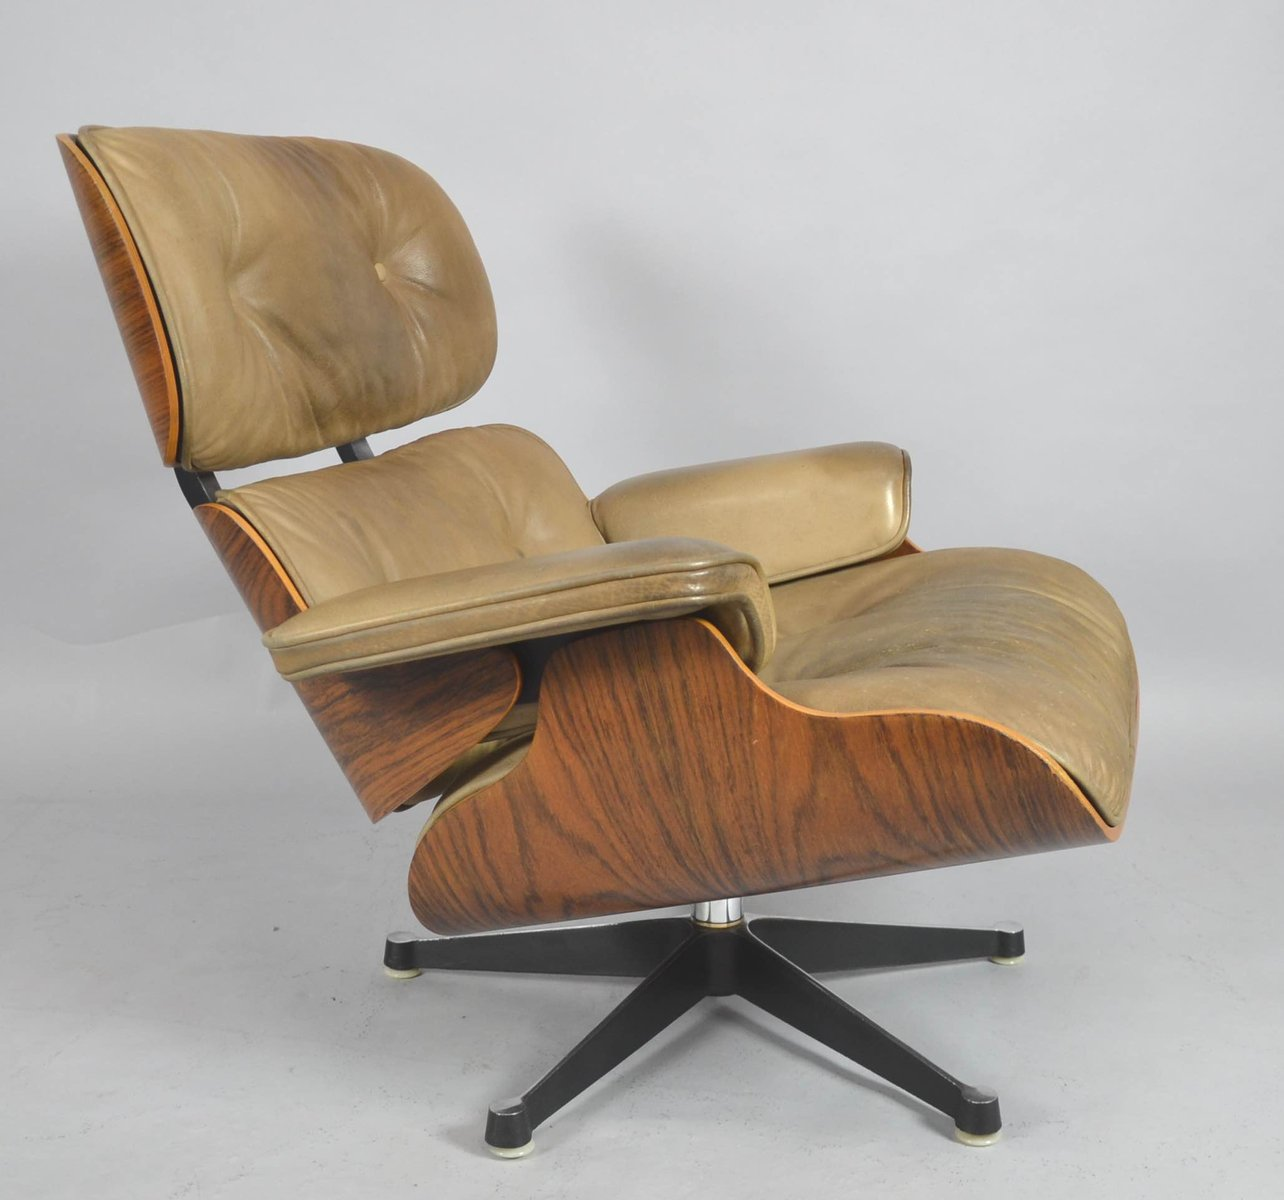 Lounge Sessel Eames Mid Century Lounge Chair By Charles Ray Eames For Fehlbaum Contura Vitra